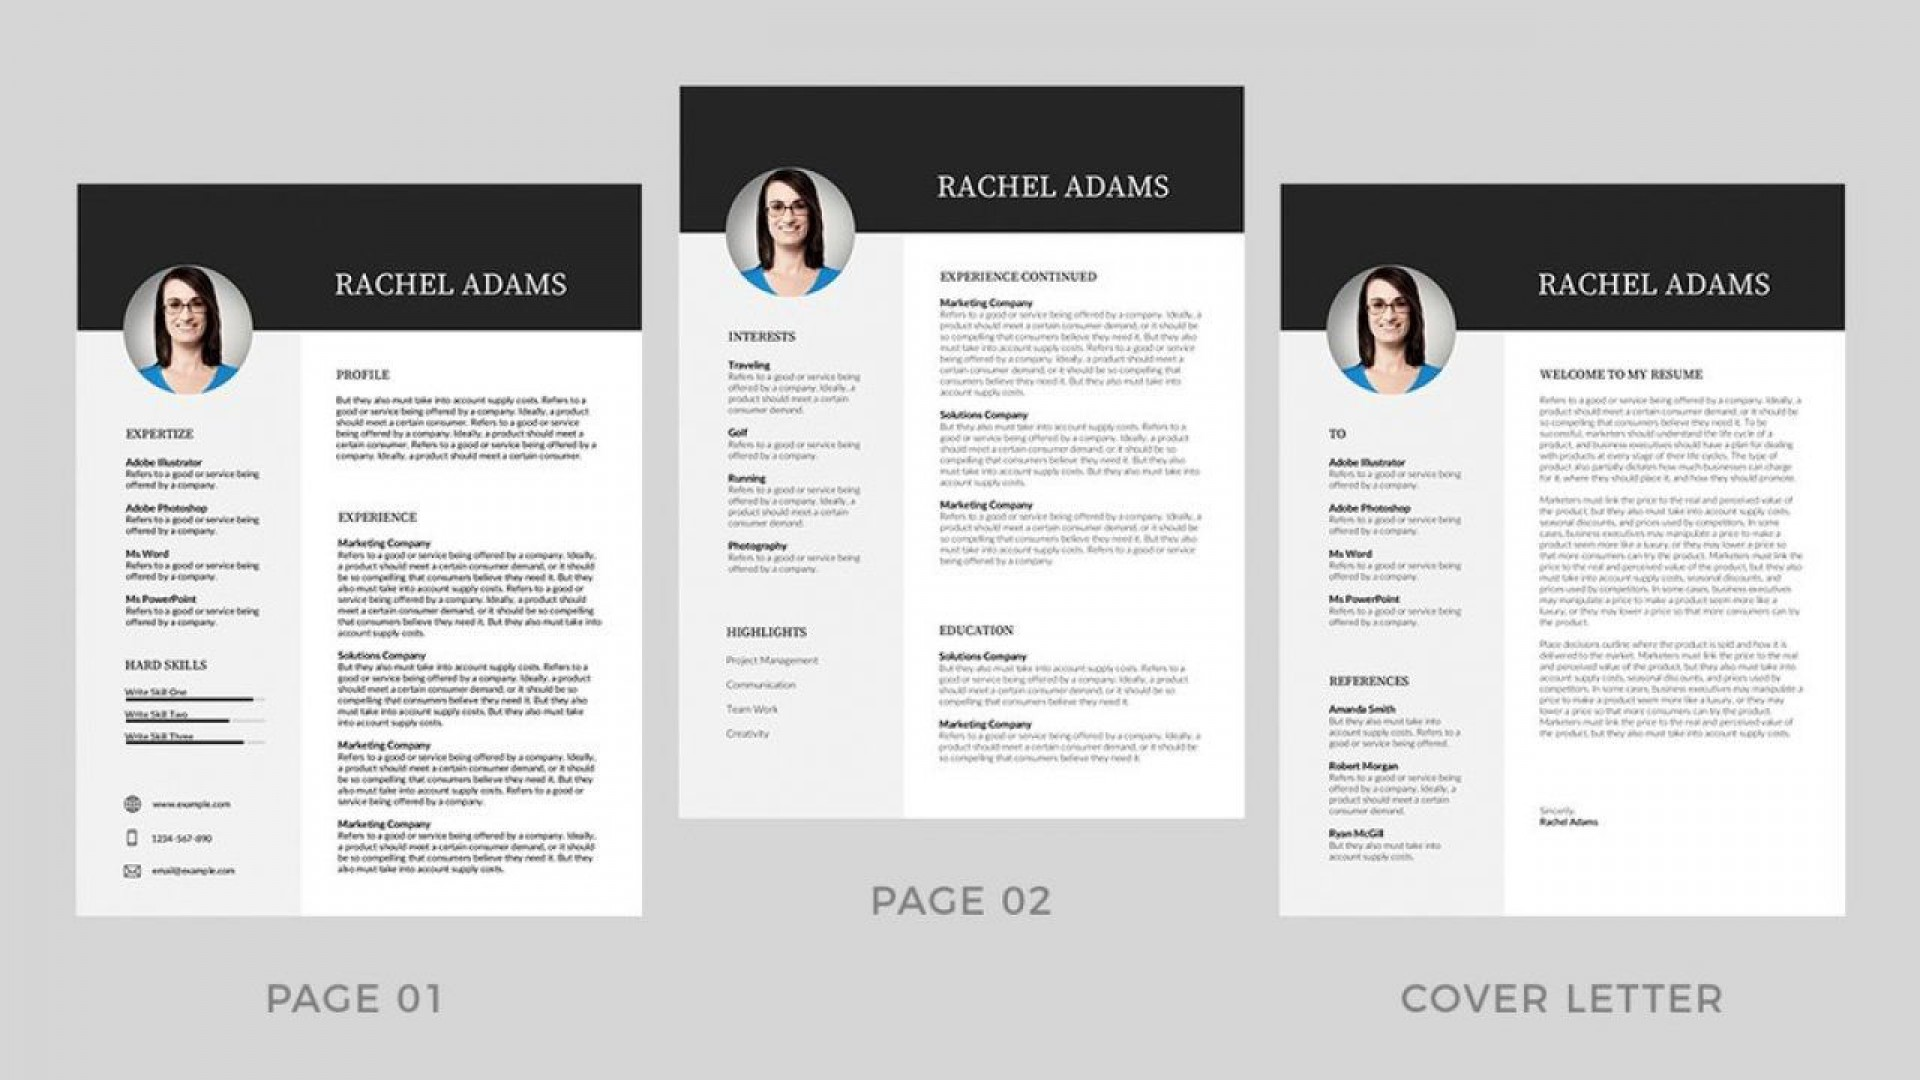 001 Best Resume Template Word Free Image  Download India 20201920